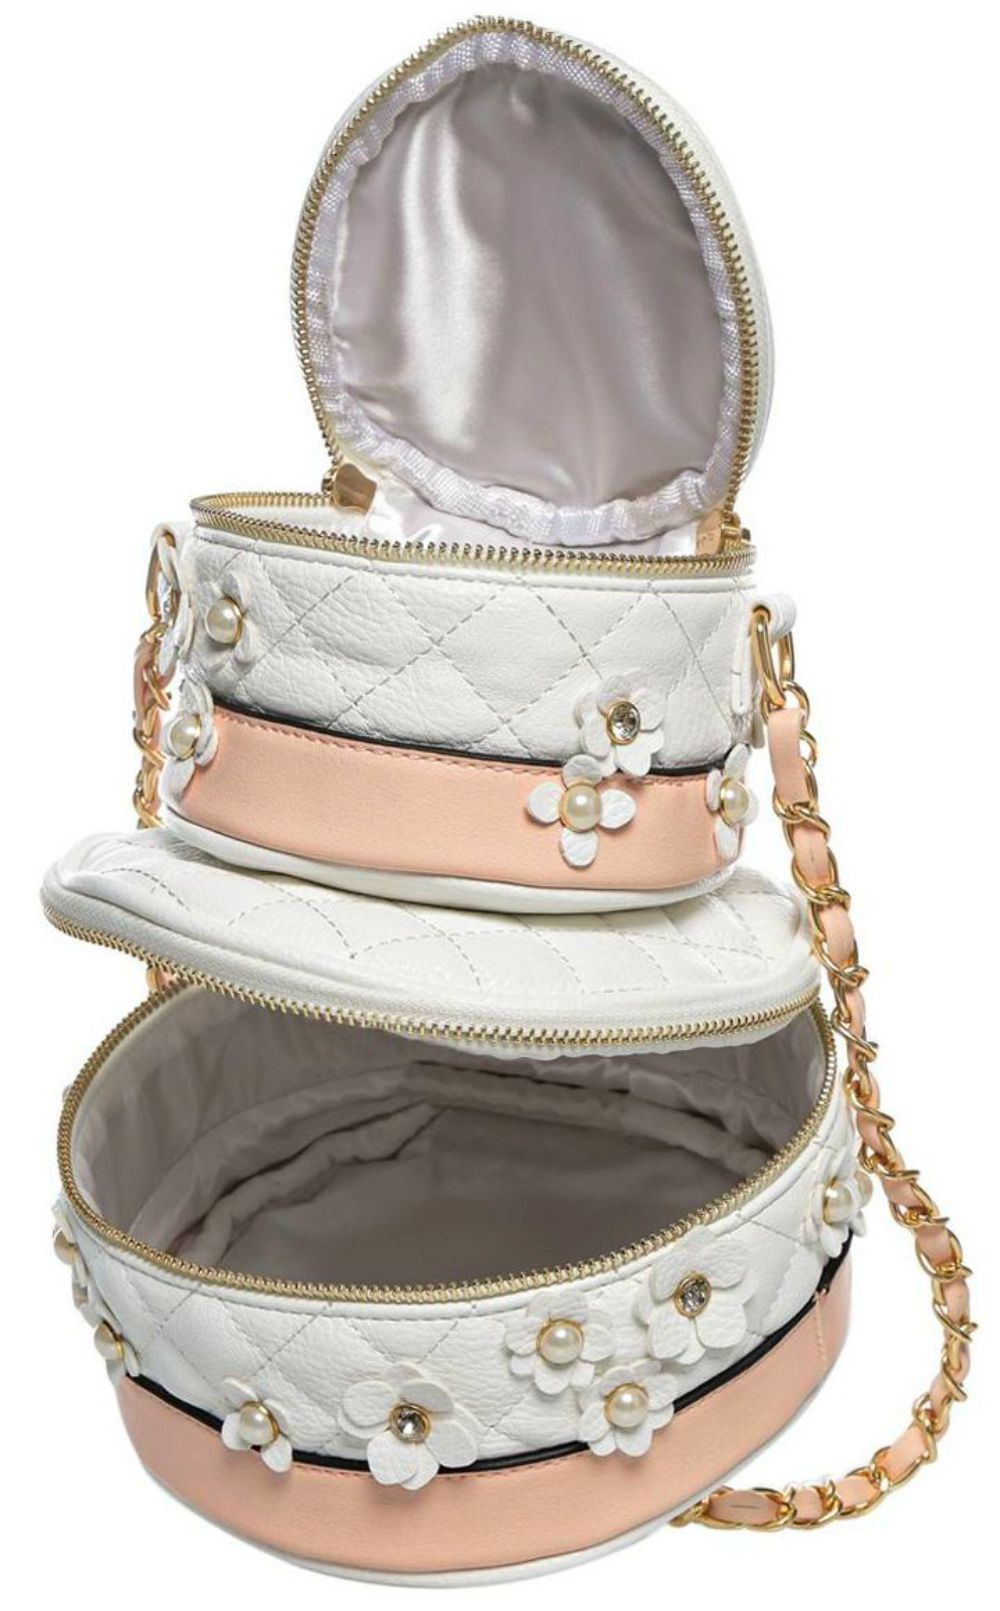 3802202f8c0 Aldo Rochelle Wedding Cake Cross Body Bag features quilted fabric with  floral embellishments